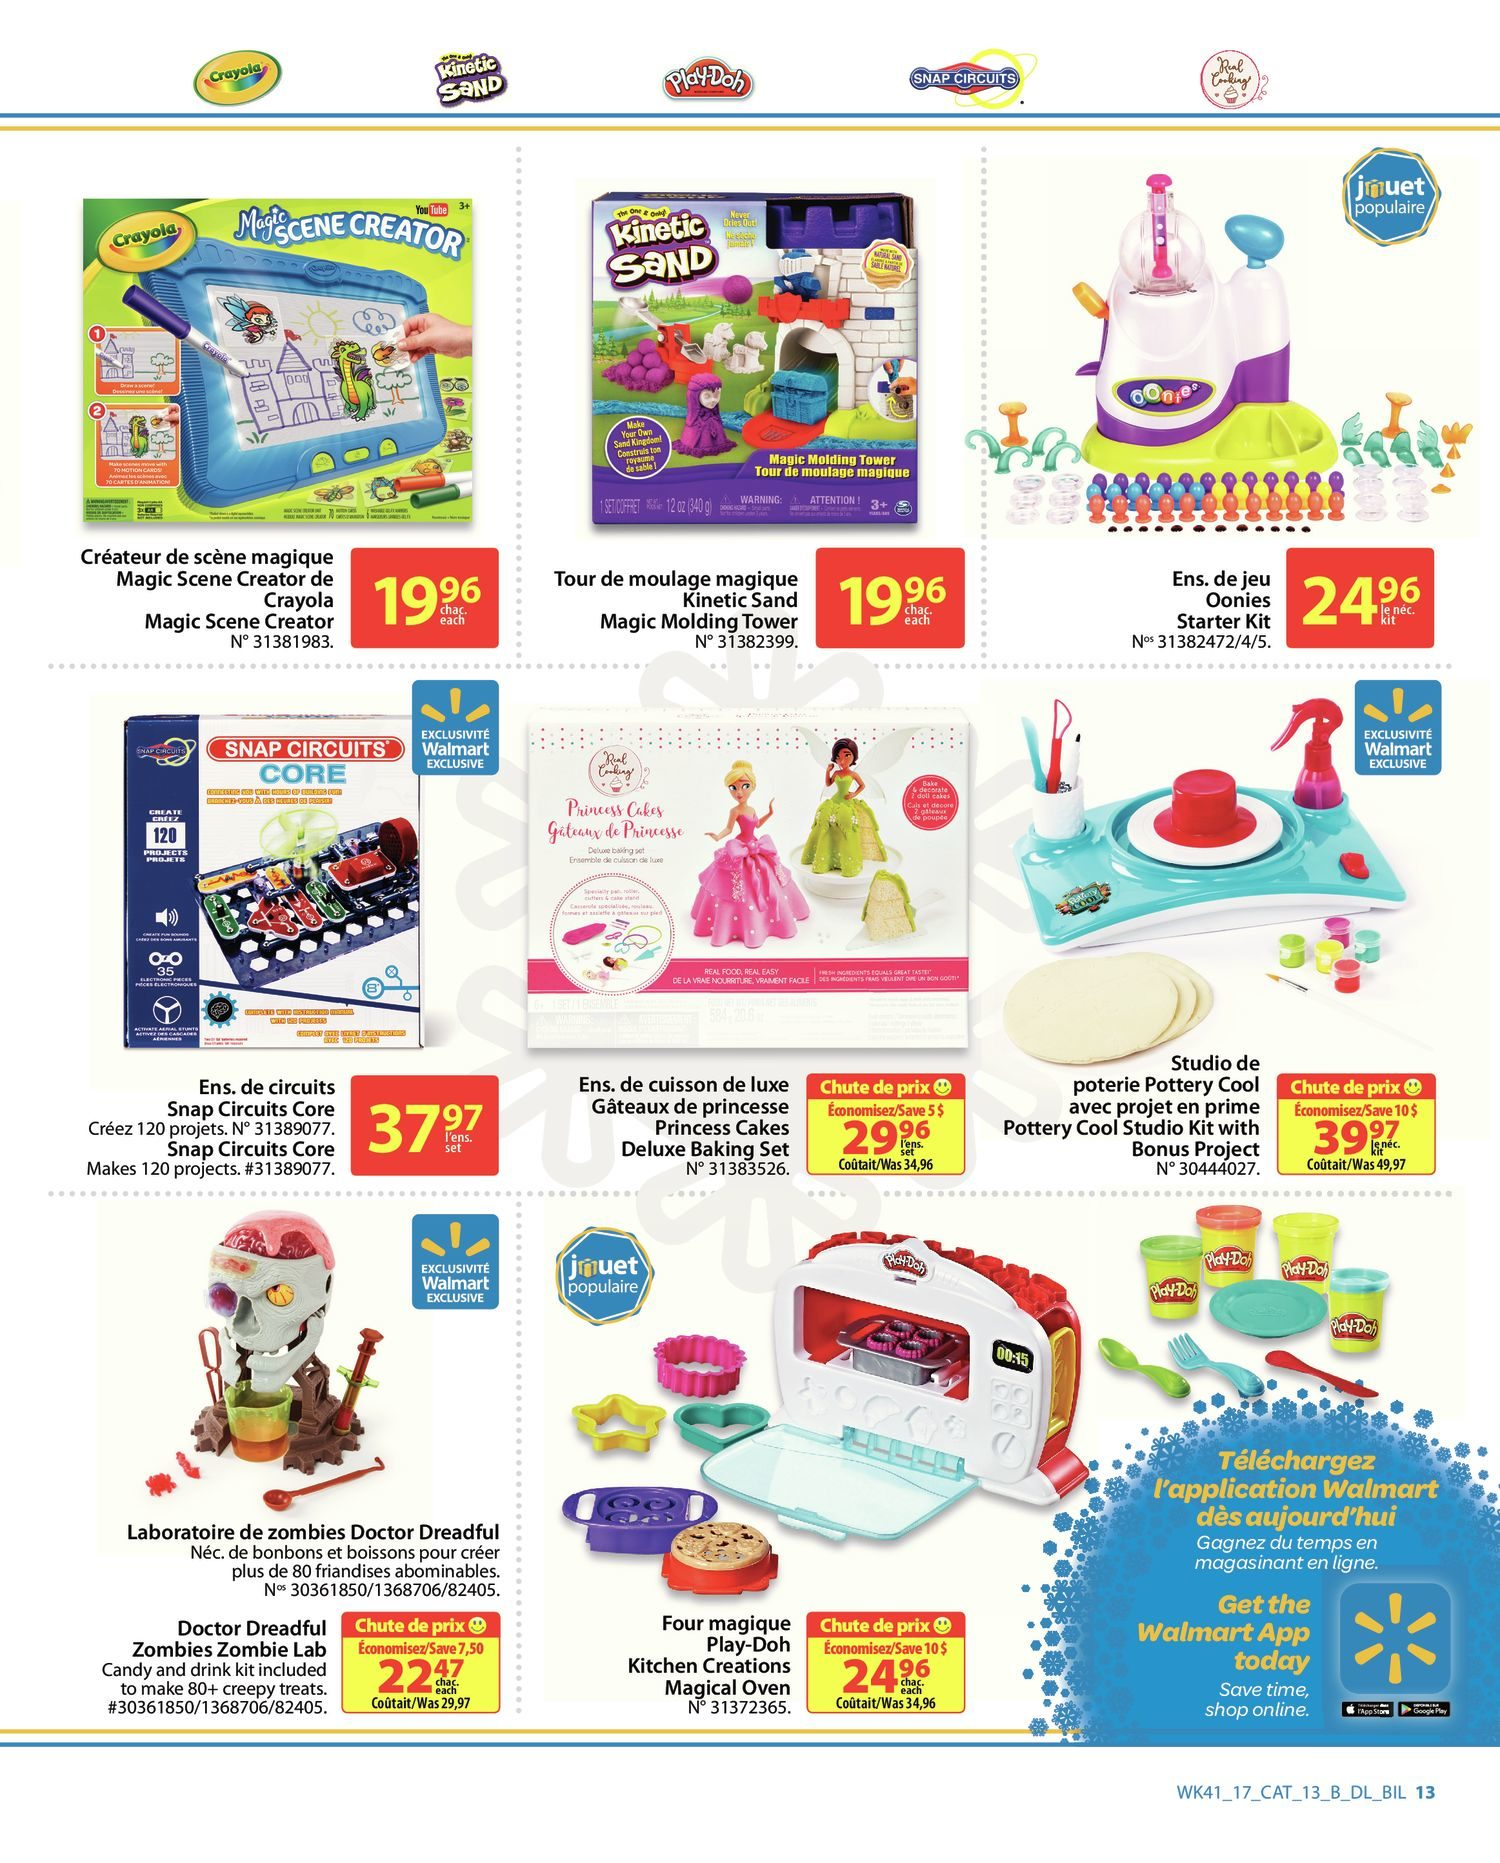 Walmart Weekly Flyer 2017 Holiday Gift Guide Nov 2 15 Snap Circuits Space Battle Kit